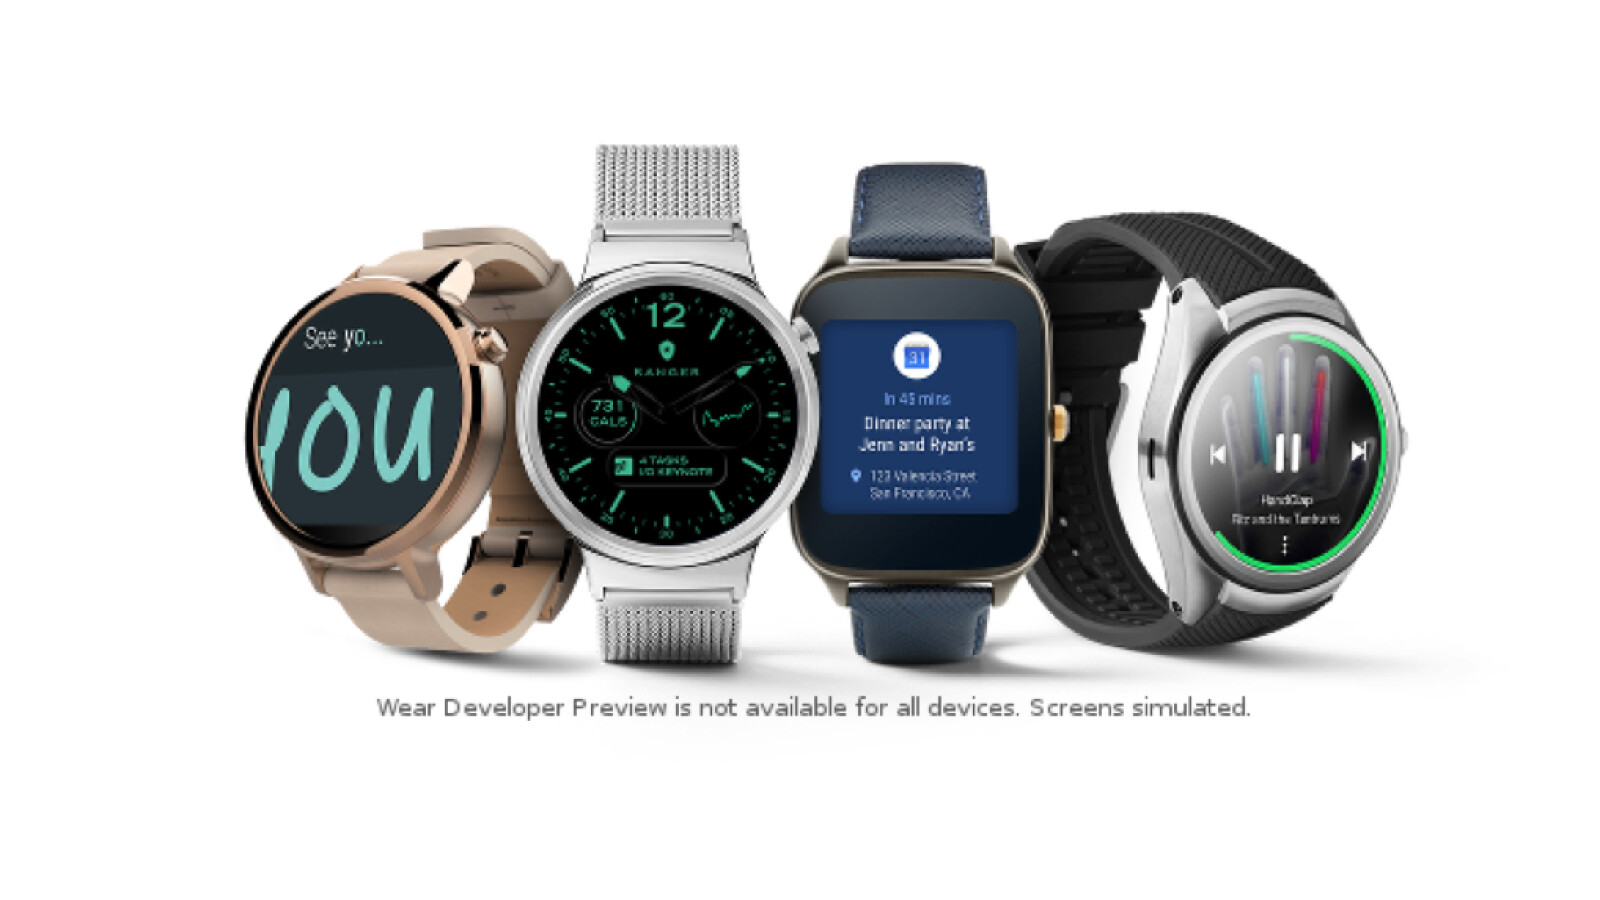 Android 11: Handy-OS als Basis des neuen Wear OS